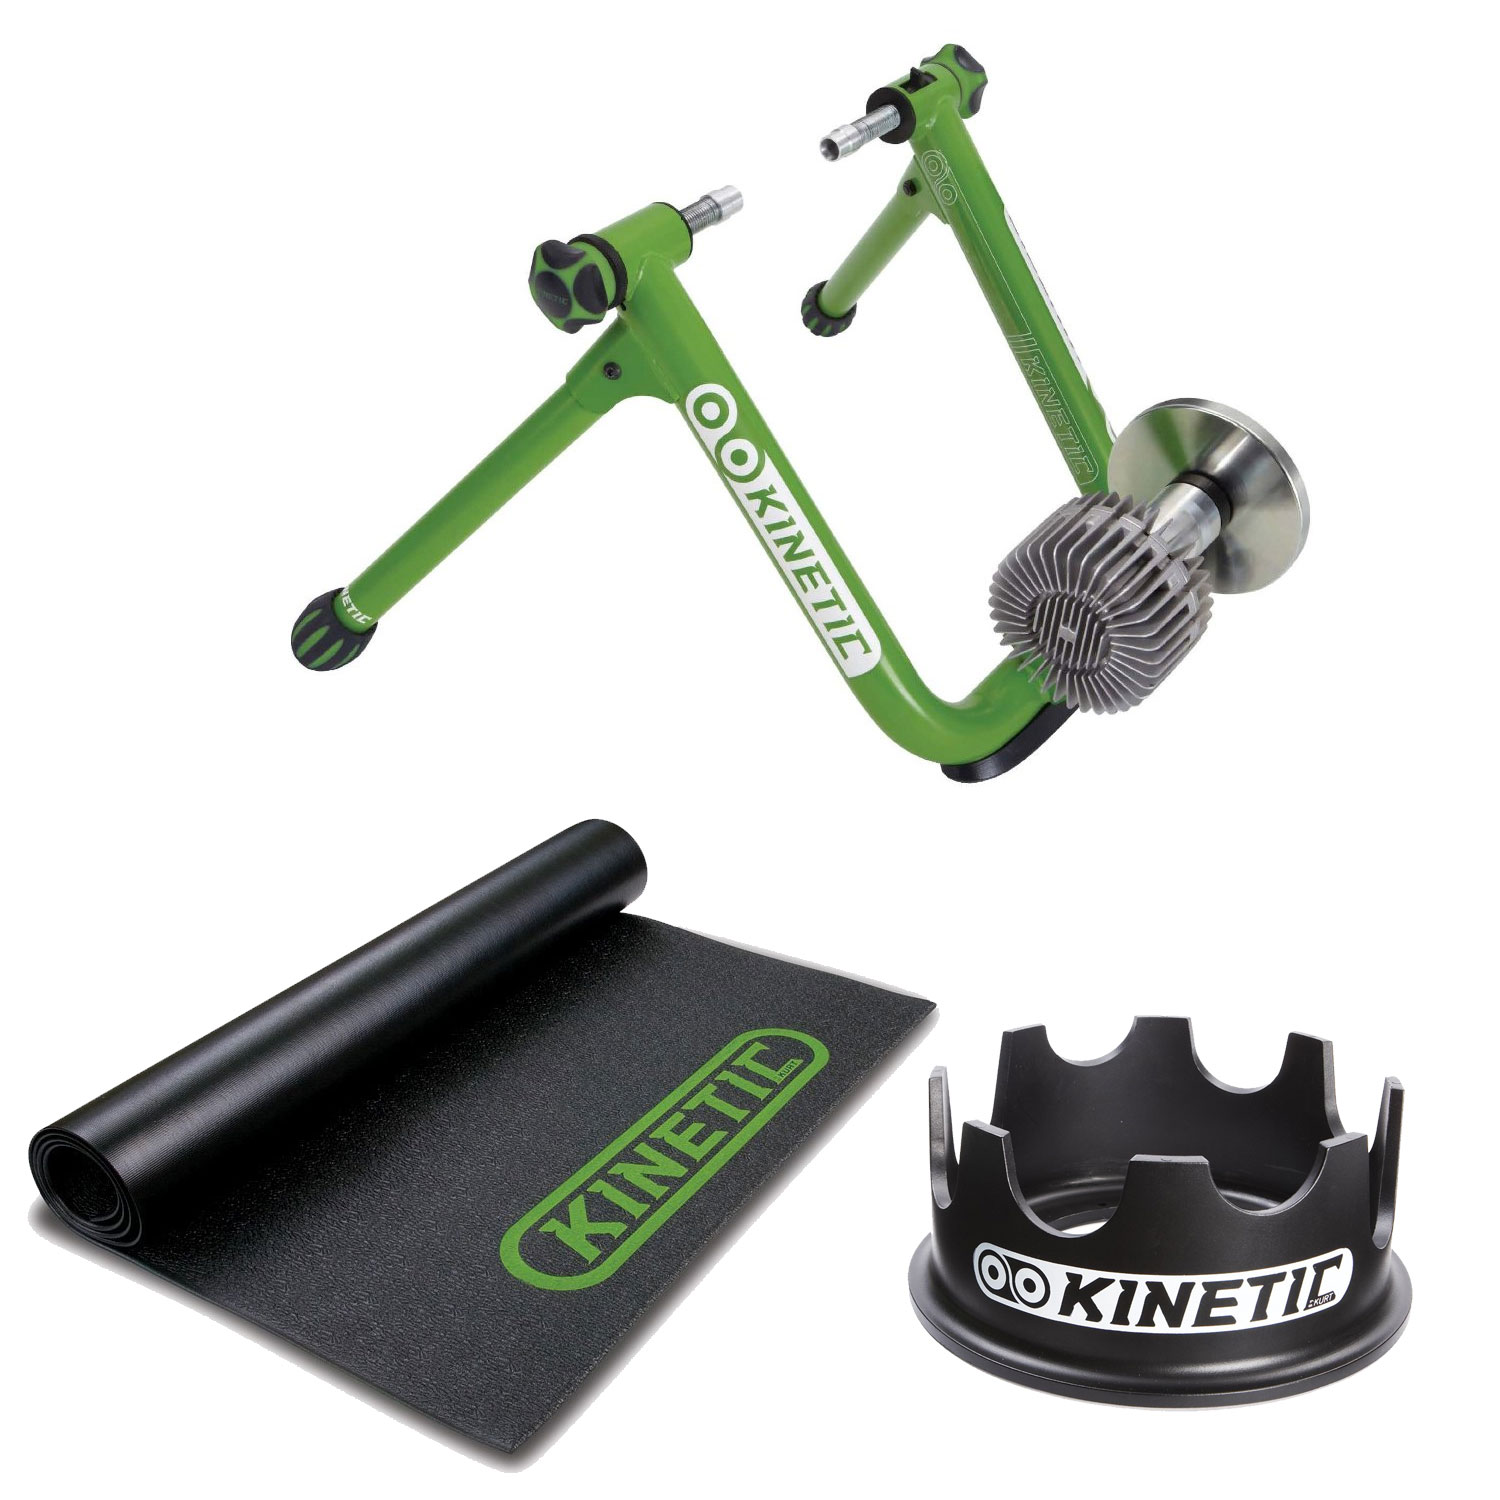 Kurt Kinetic Kinetic T-2200 New Road Machine 2.0 Fluid Trainer + Kinetic Rubber Bicycle Trainer Floor Mat + Kinetic Fixed Riser Ring